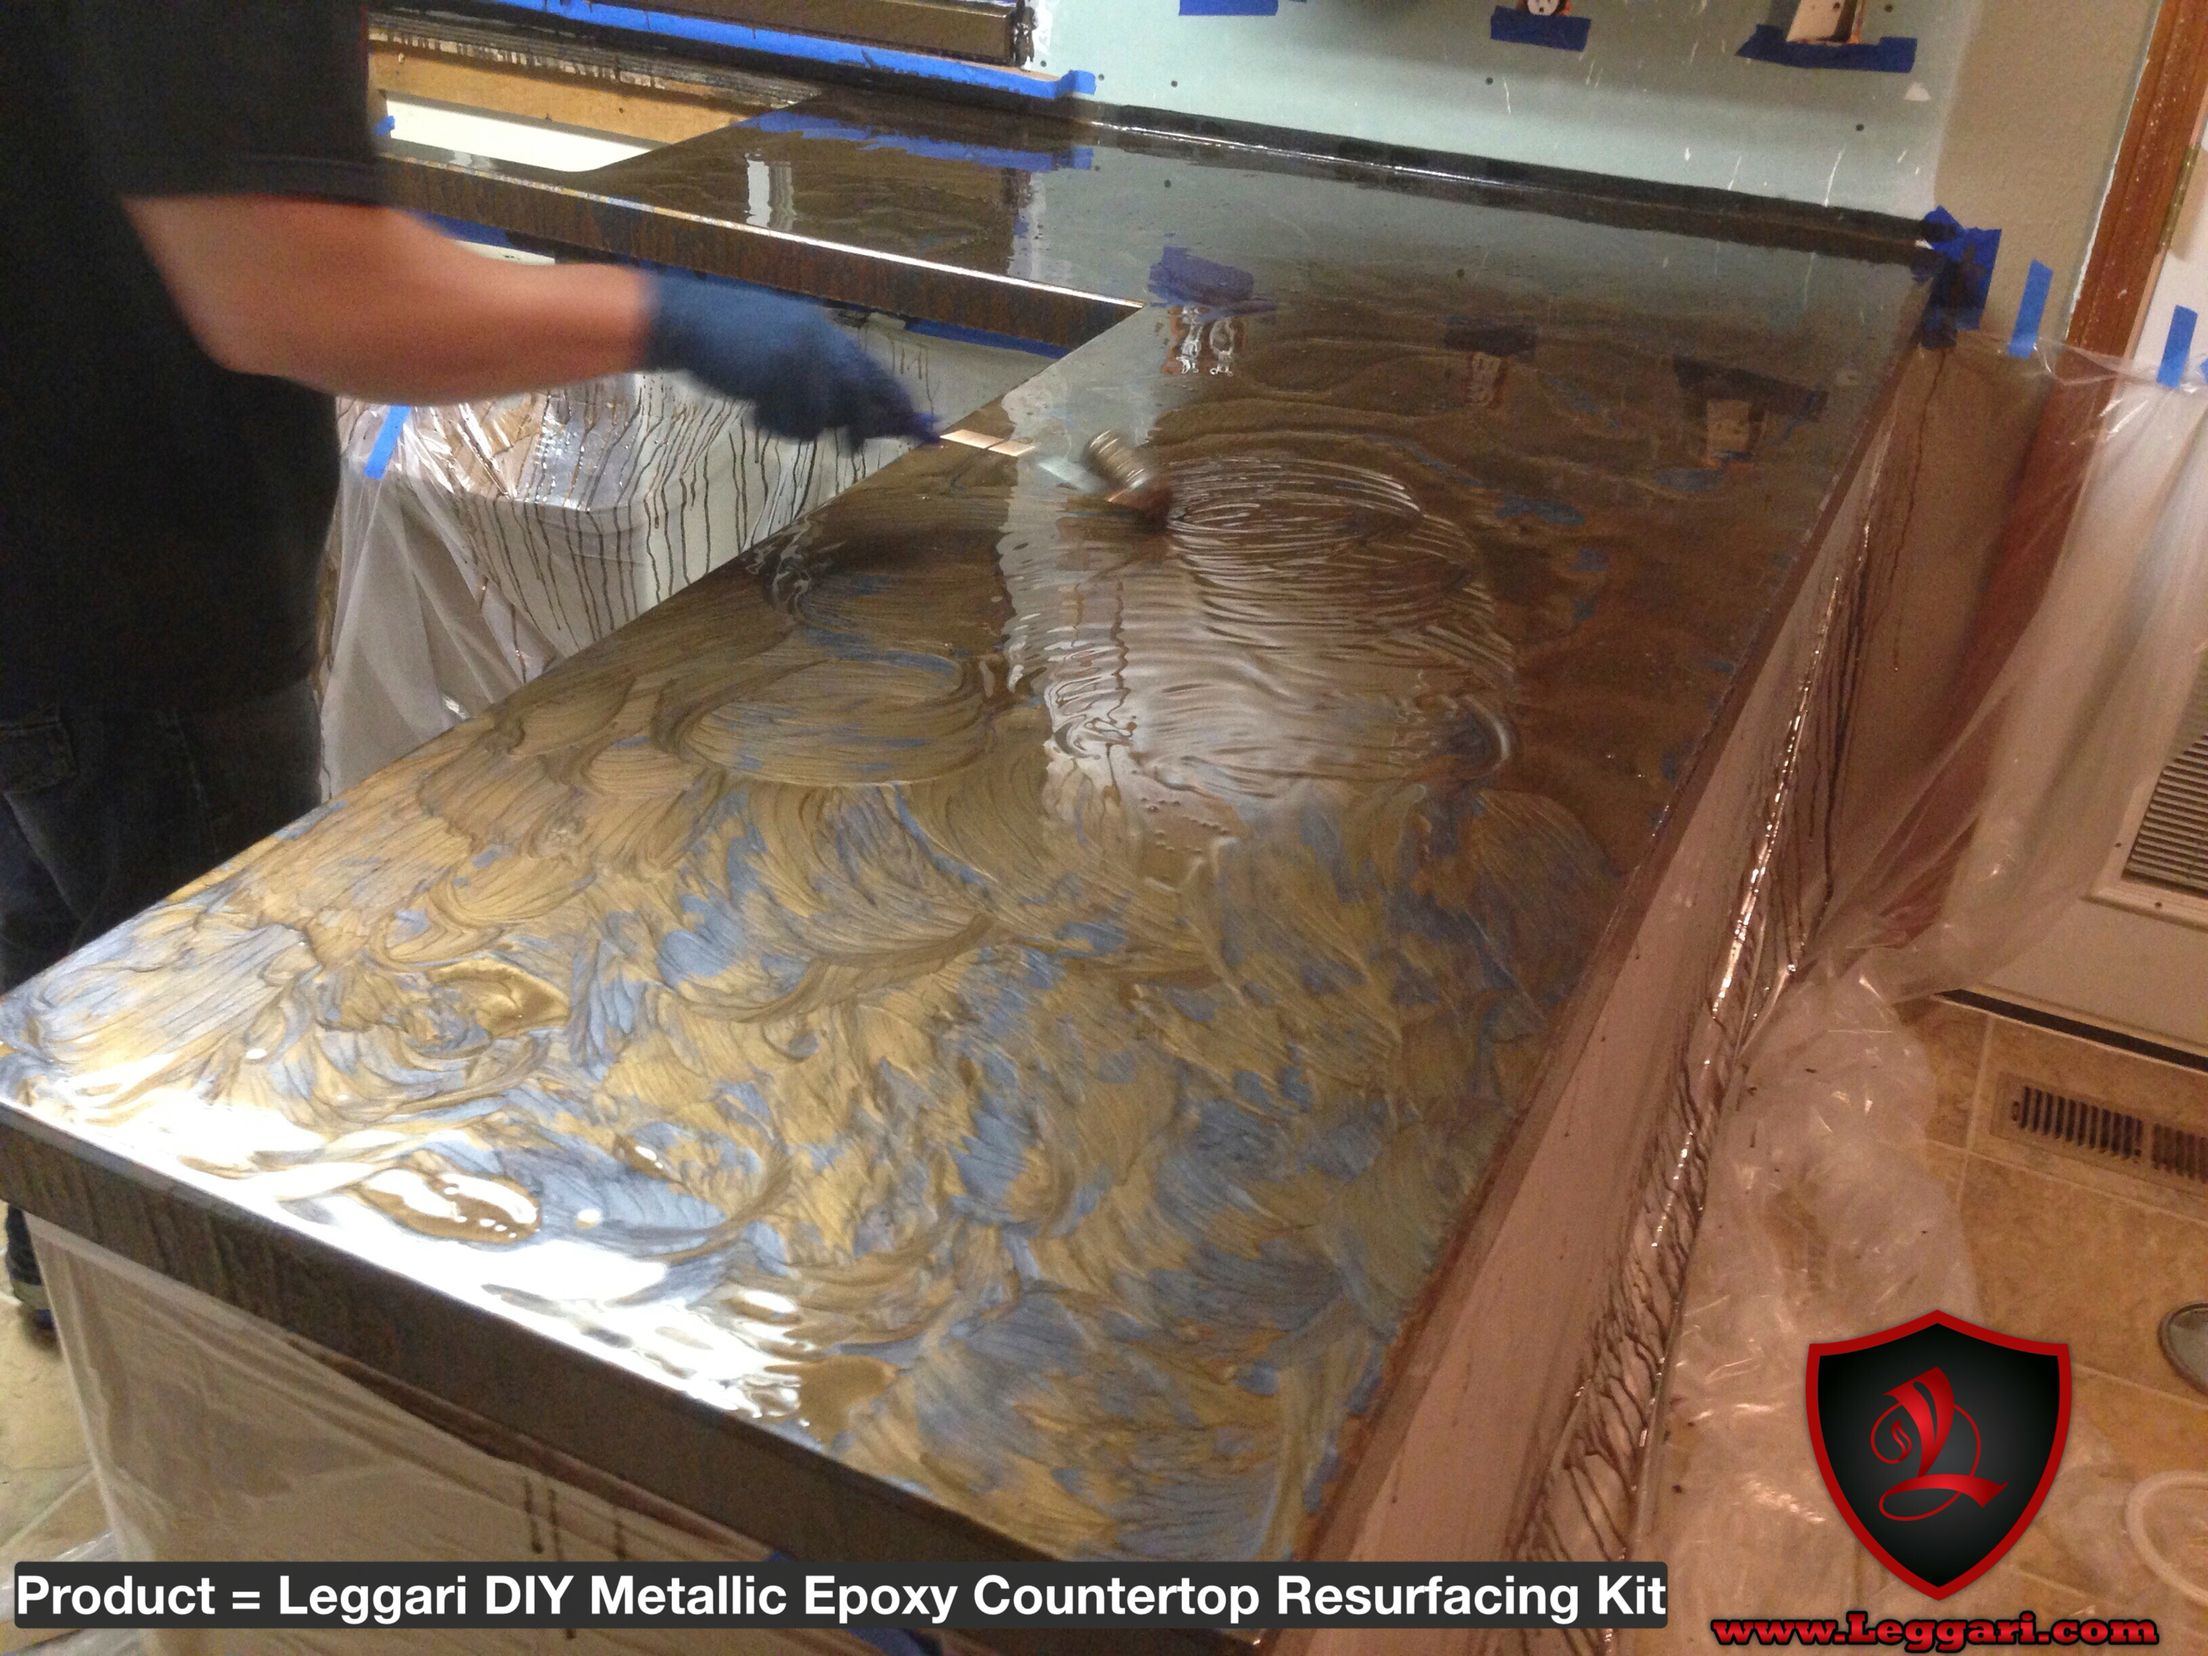 Diy Metallic Epoxy Countertop Resurfacing Kits Are